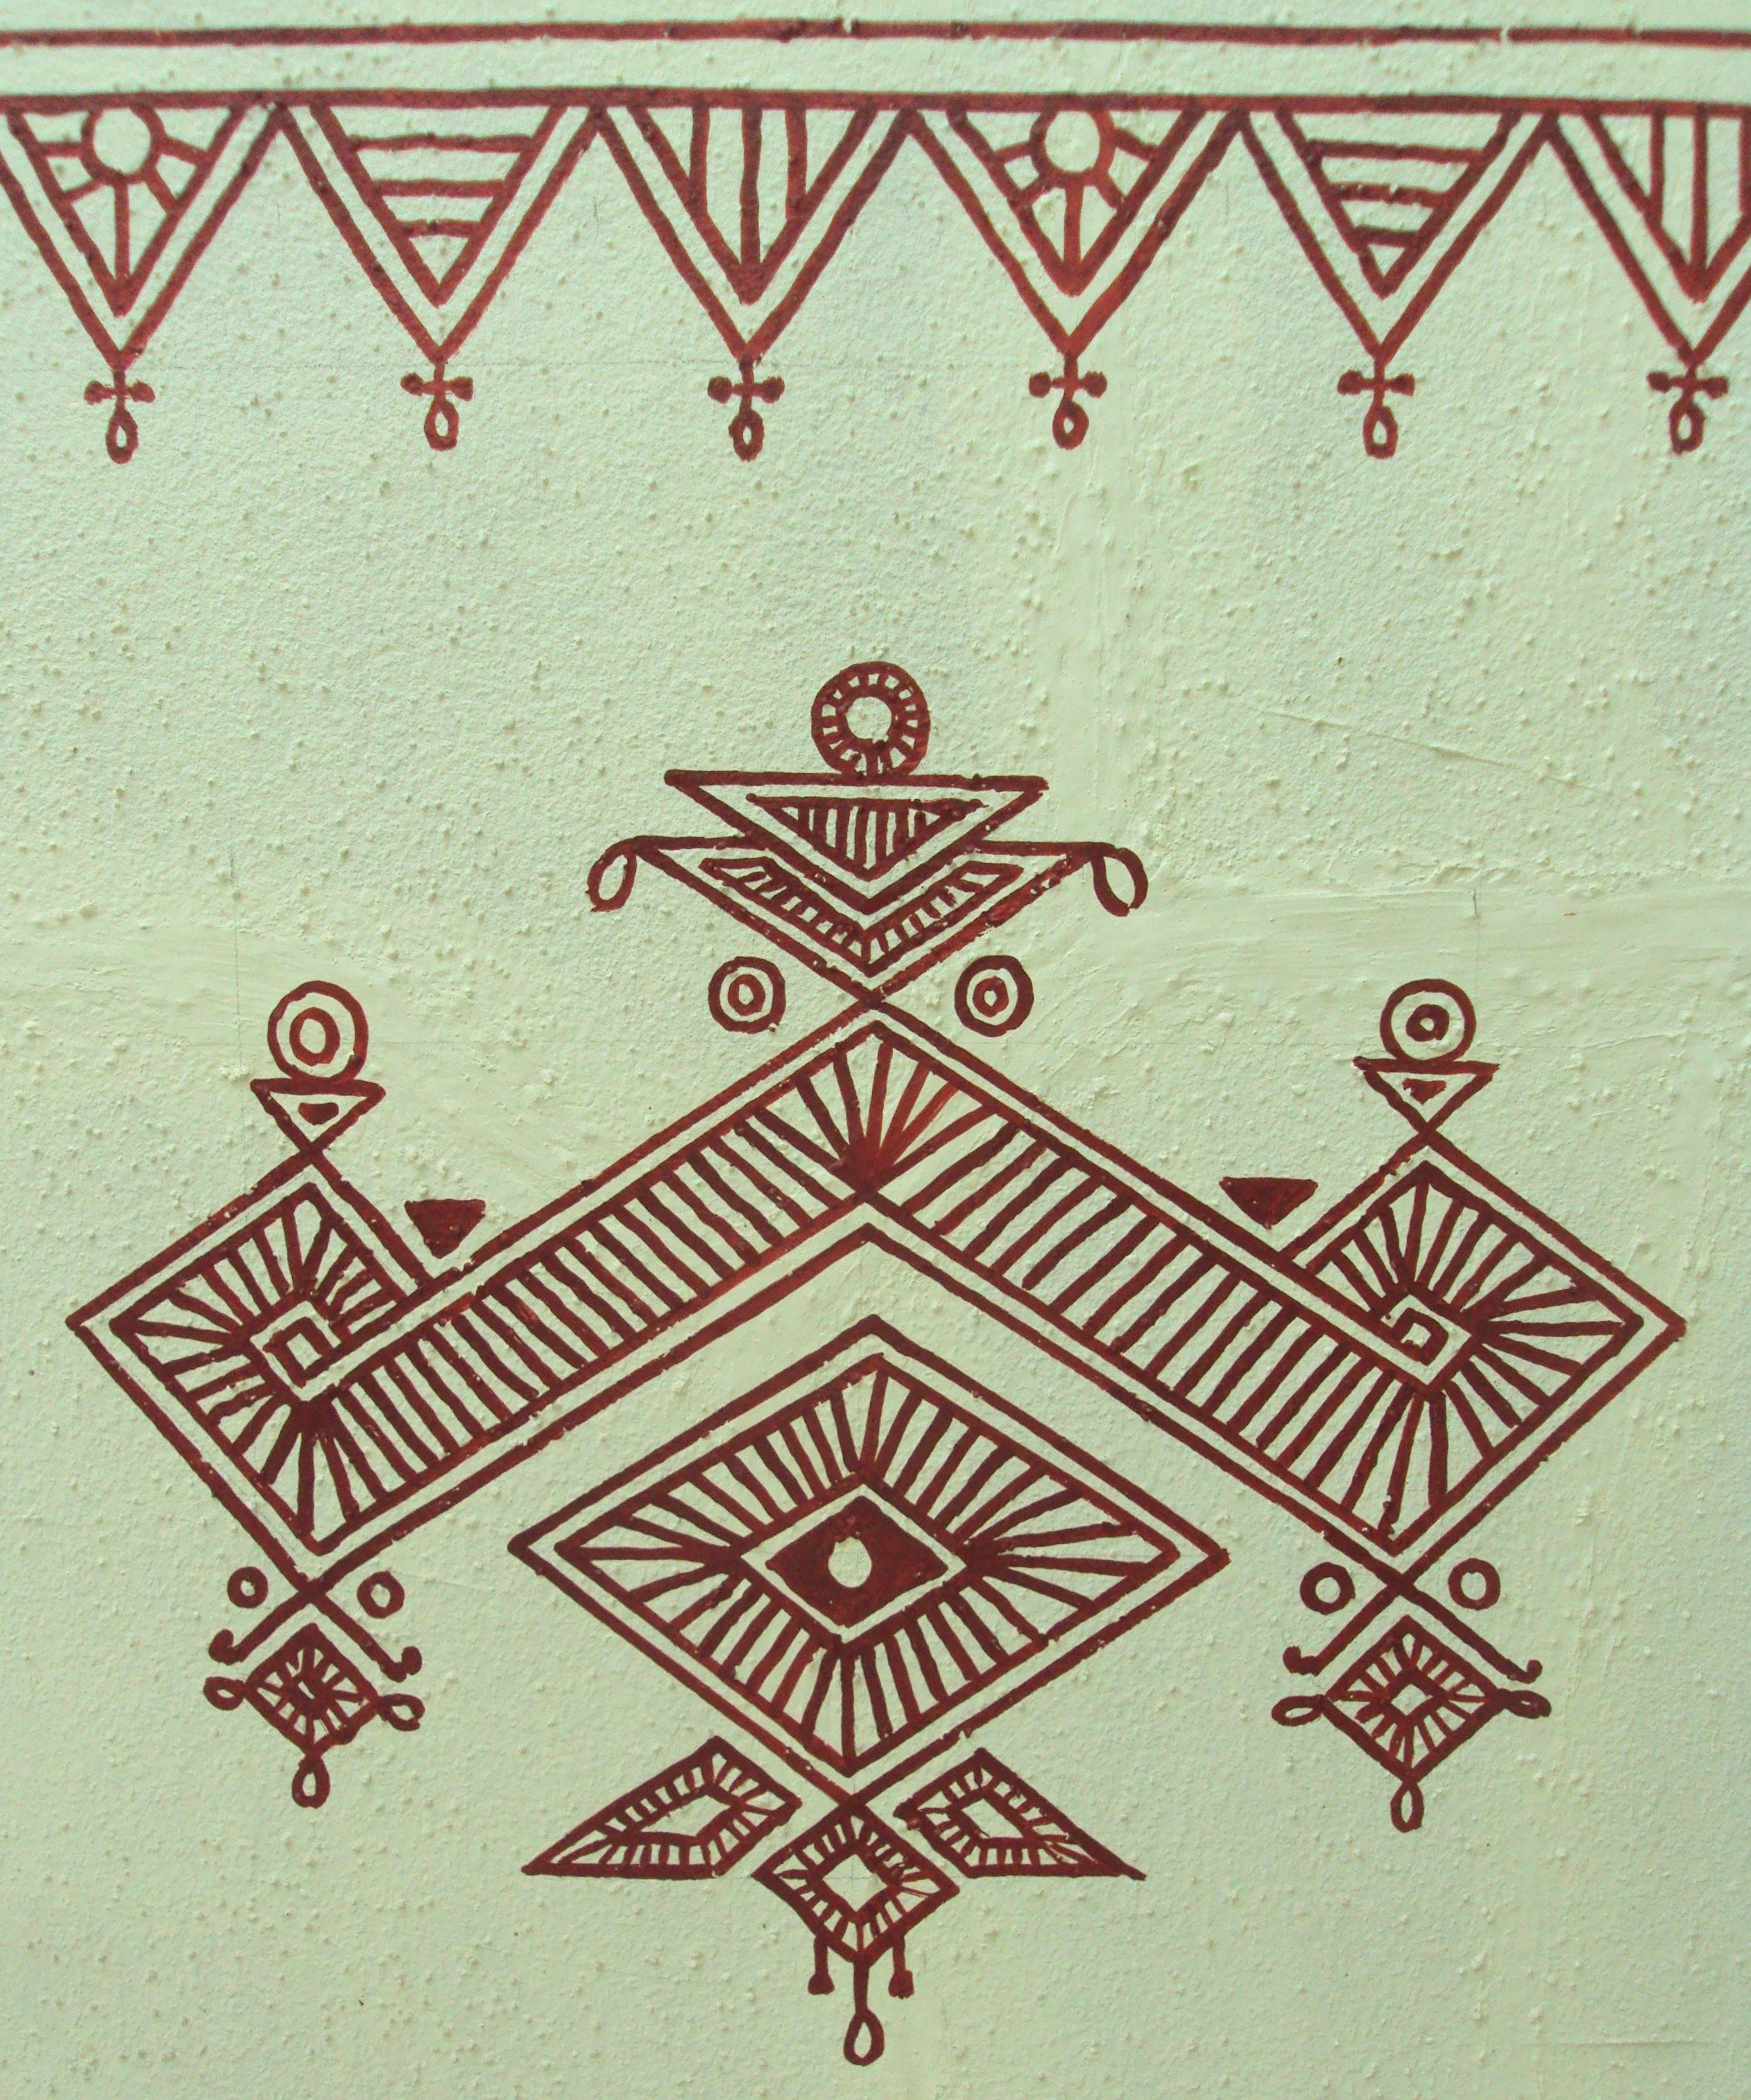 Bheenth Chitra – A Unique Indian Tribal Wall Art Style (step Intended For Latest Thai Fabric Wall Art (View 13 of 15)